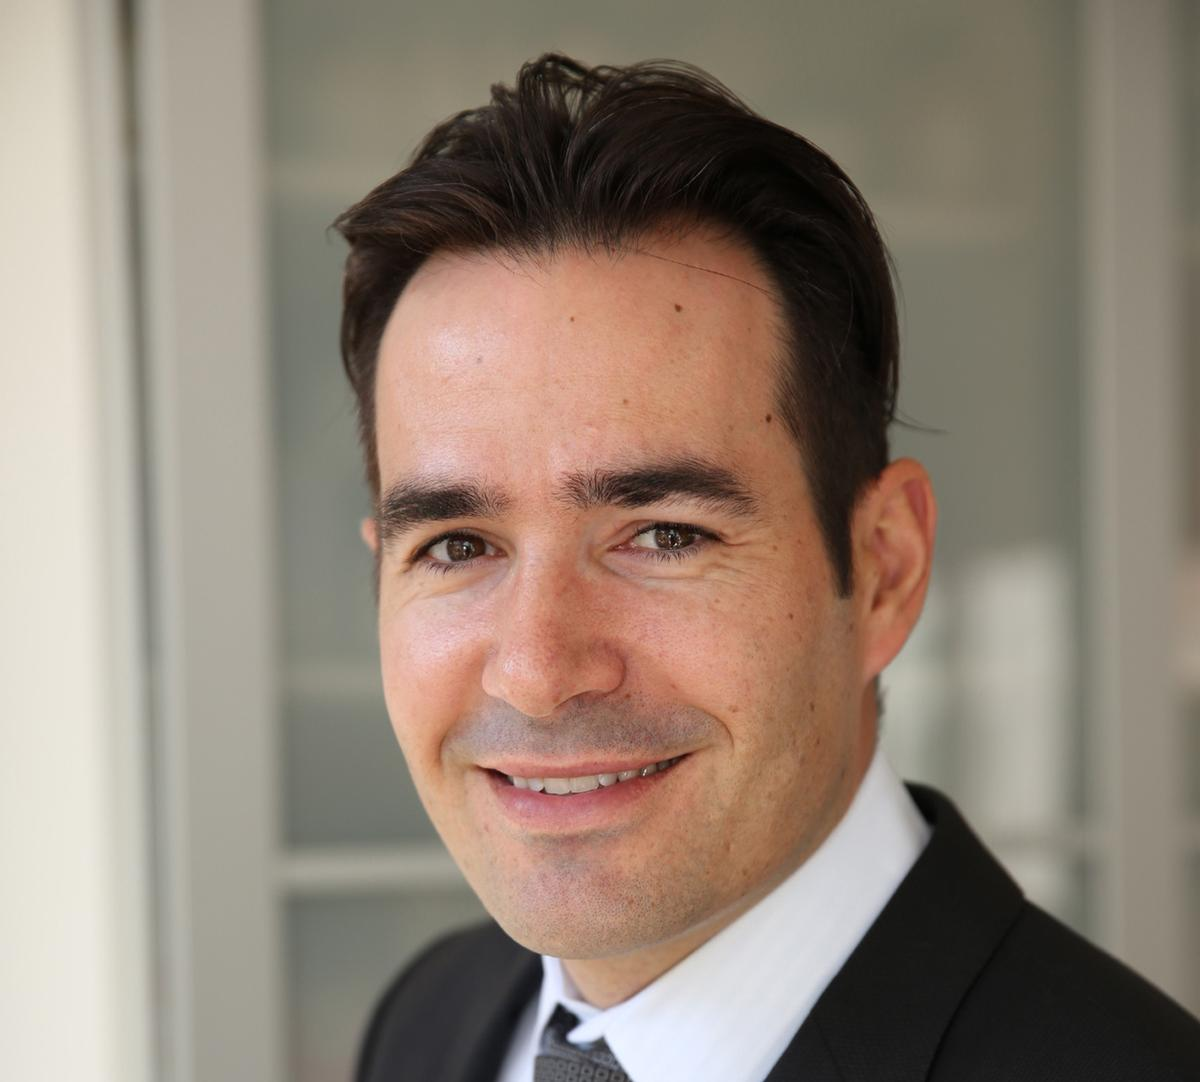 Anthony Molet joined the Davines Group in 2008 as CEO for North America / Davines Group